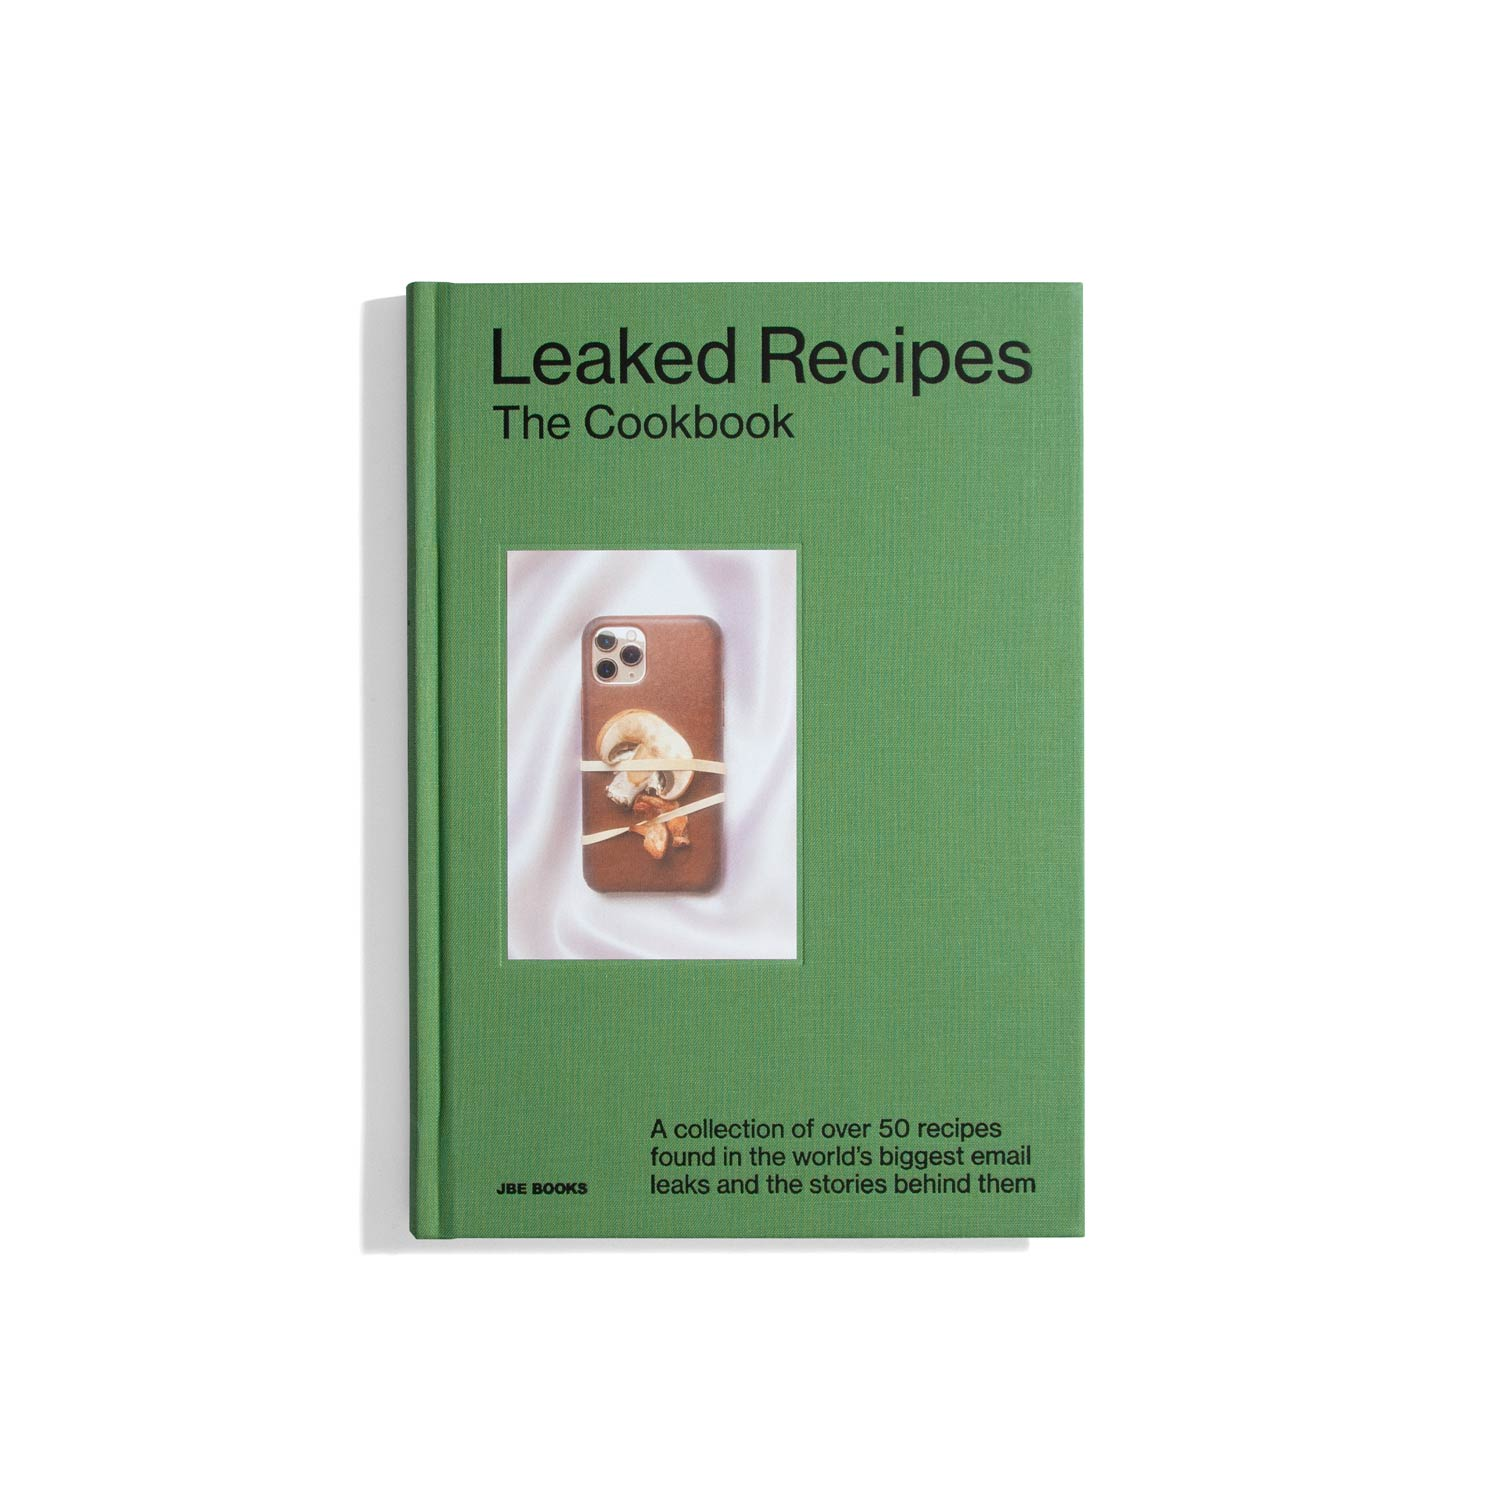 Leaked Recipes - The Cookbook